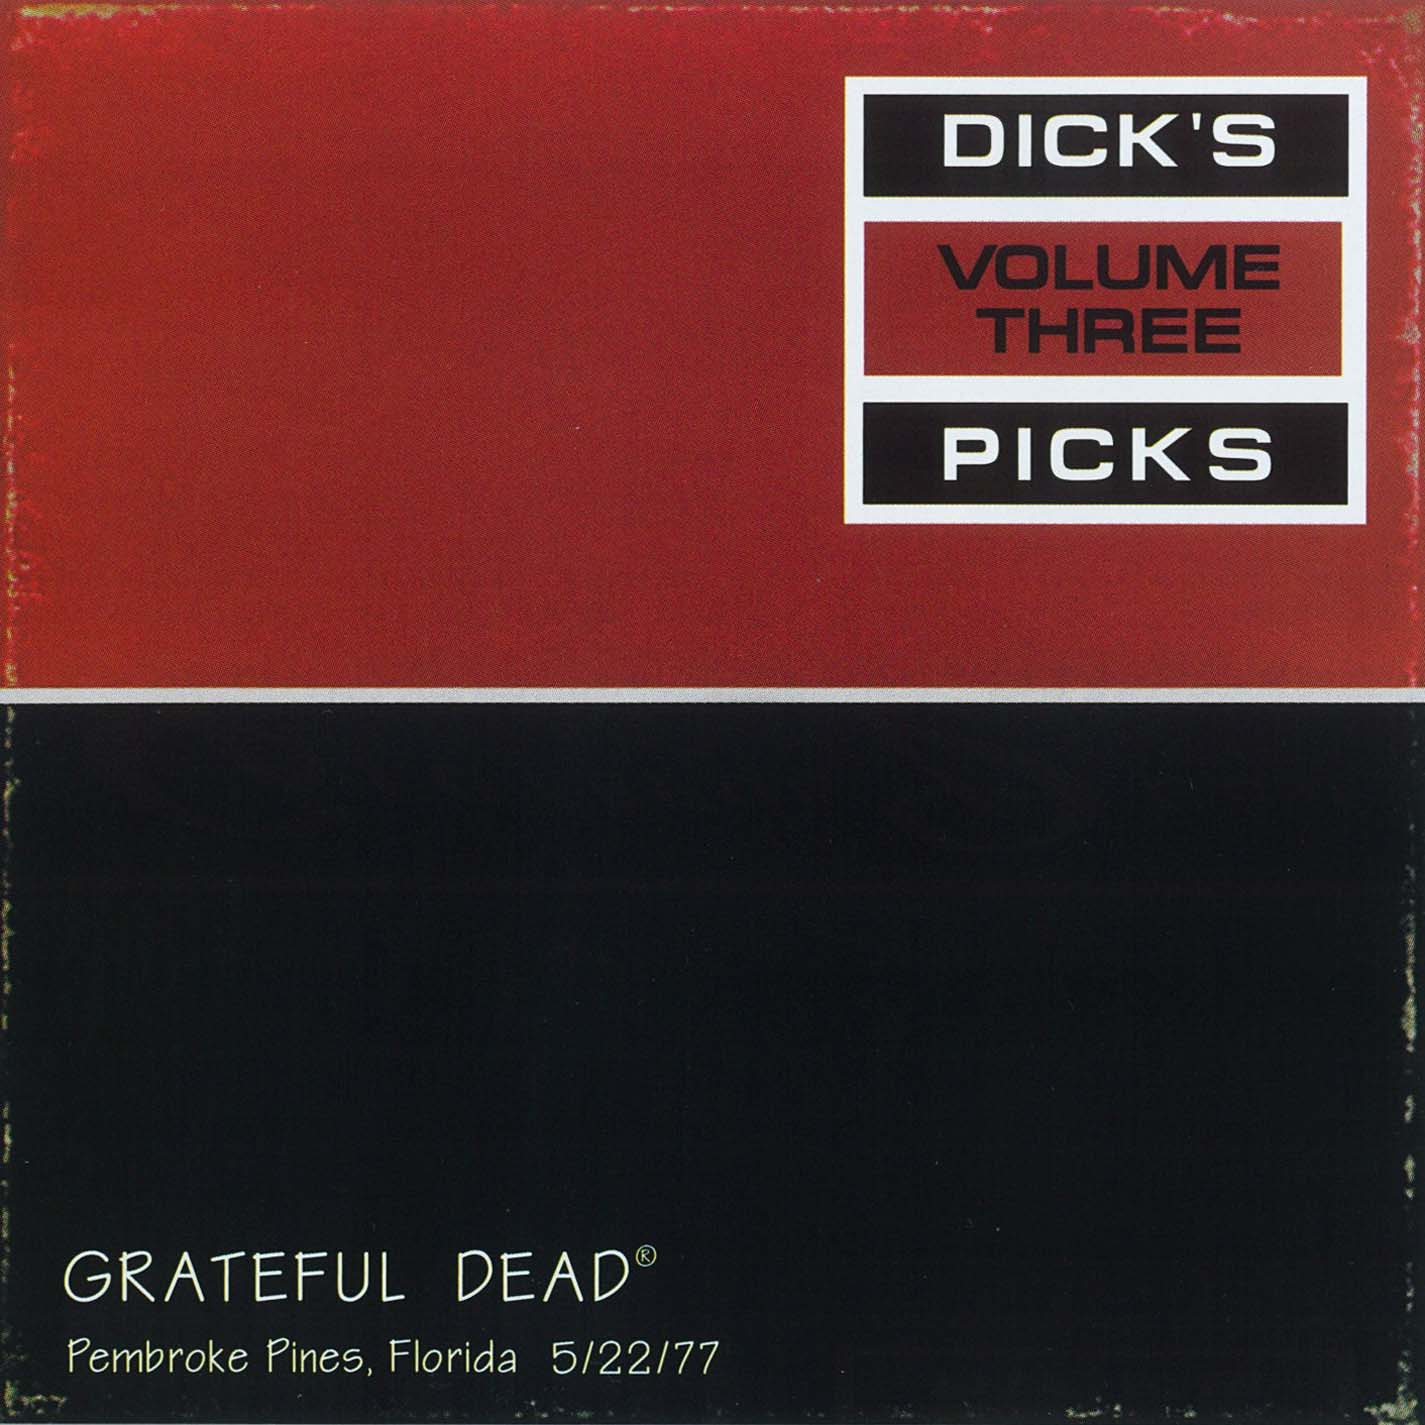 Grateful Dead Dick's Picks 3 album cover artwork